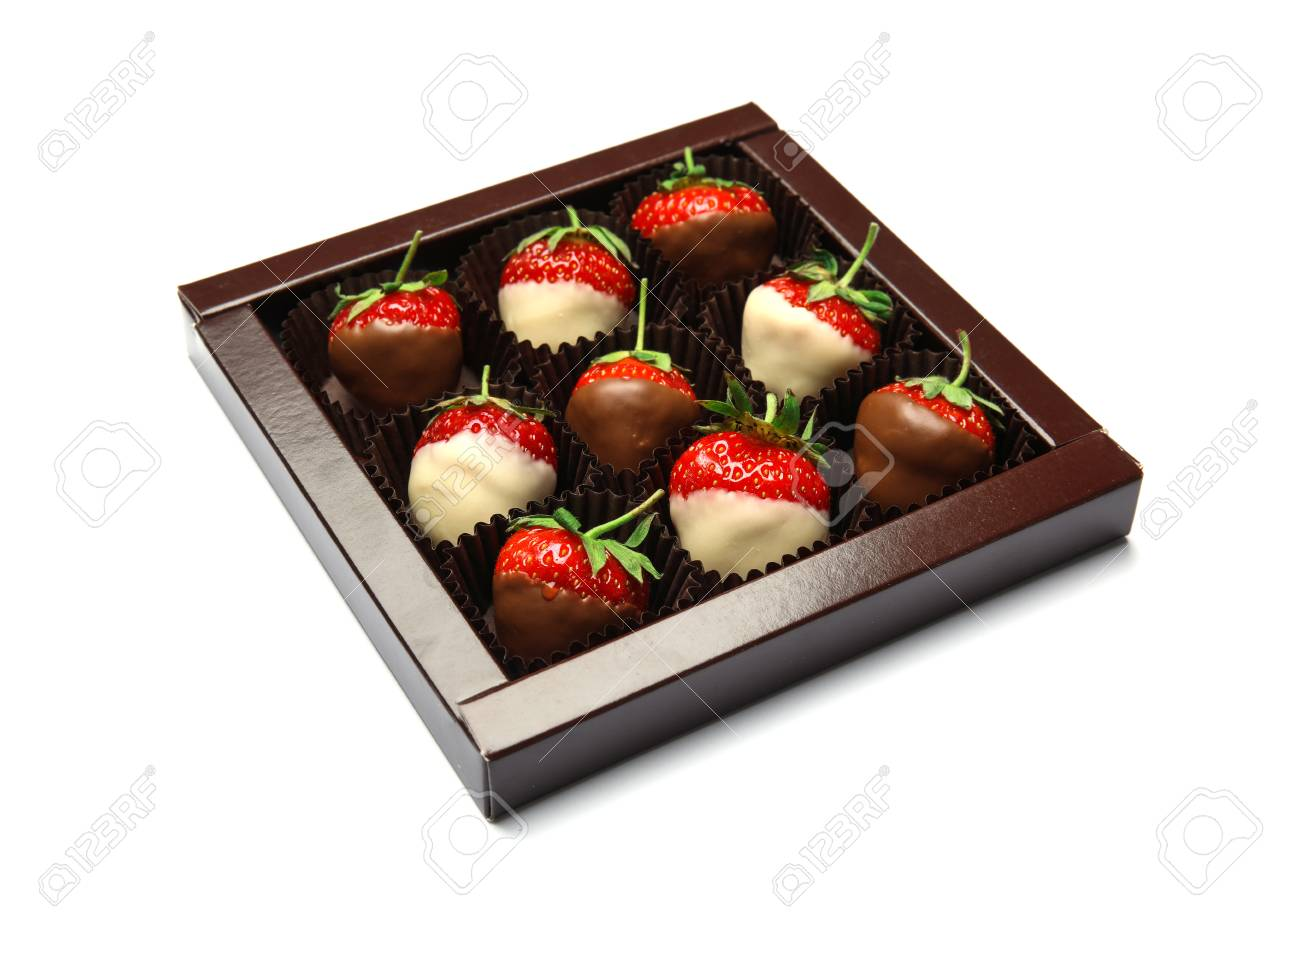 Box With Chocolate Covered Strawberries On White Background Stock Photo Picture And Royalty Free Image Image 106002296